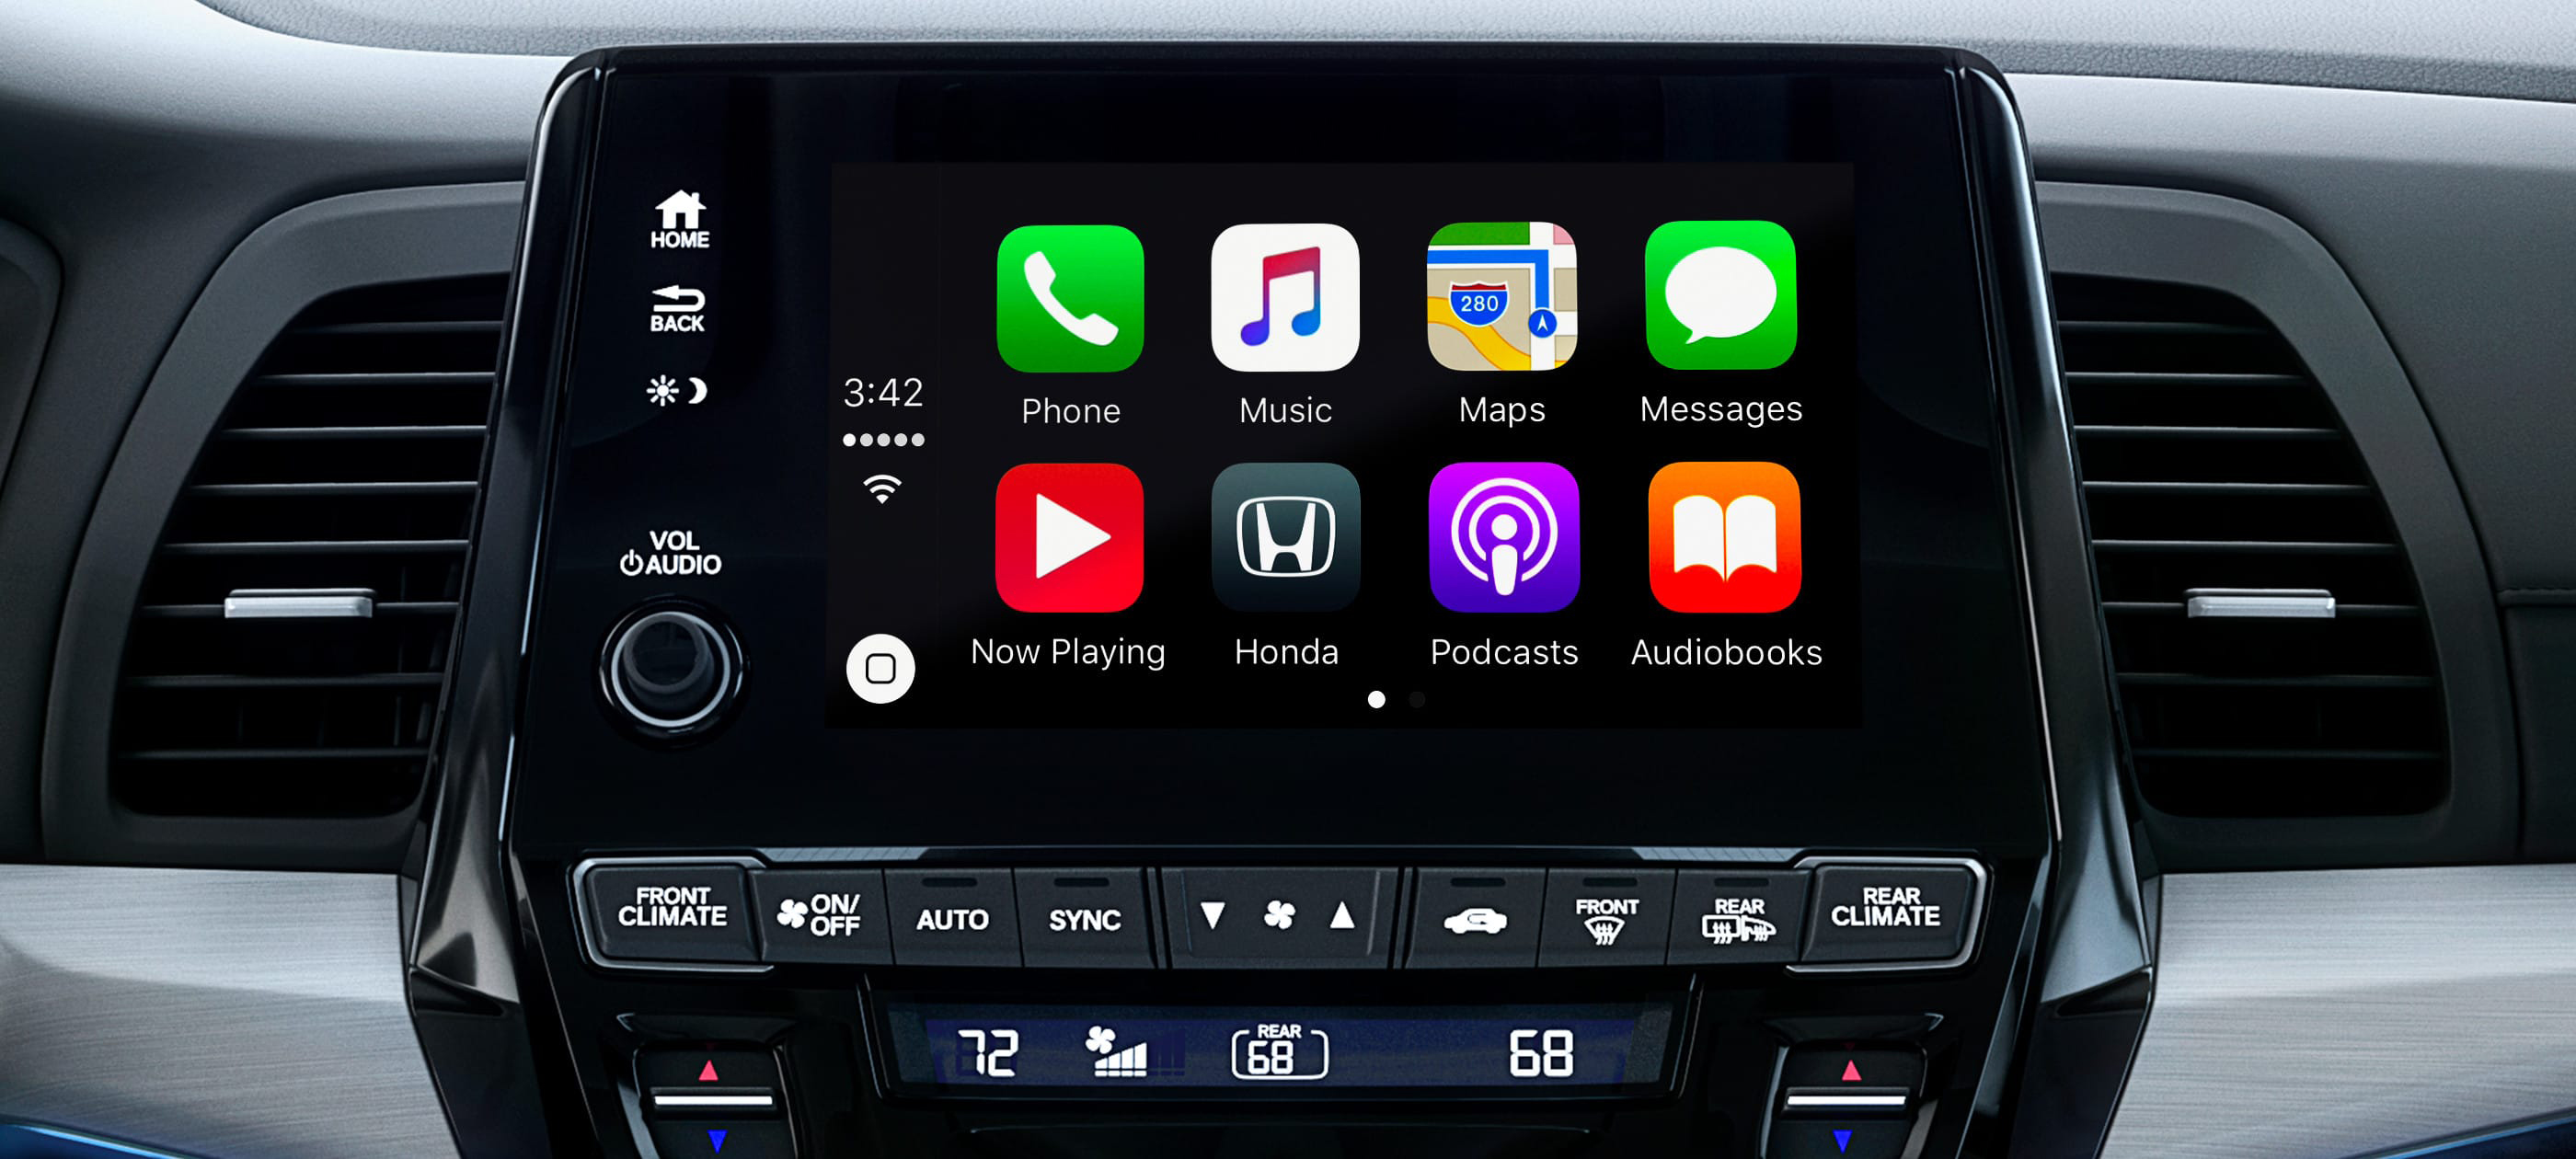 Integración con Apple CarPlay™